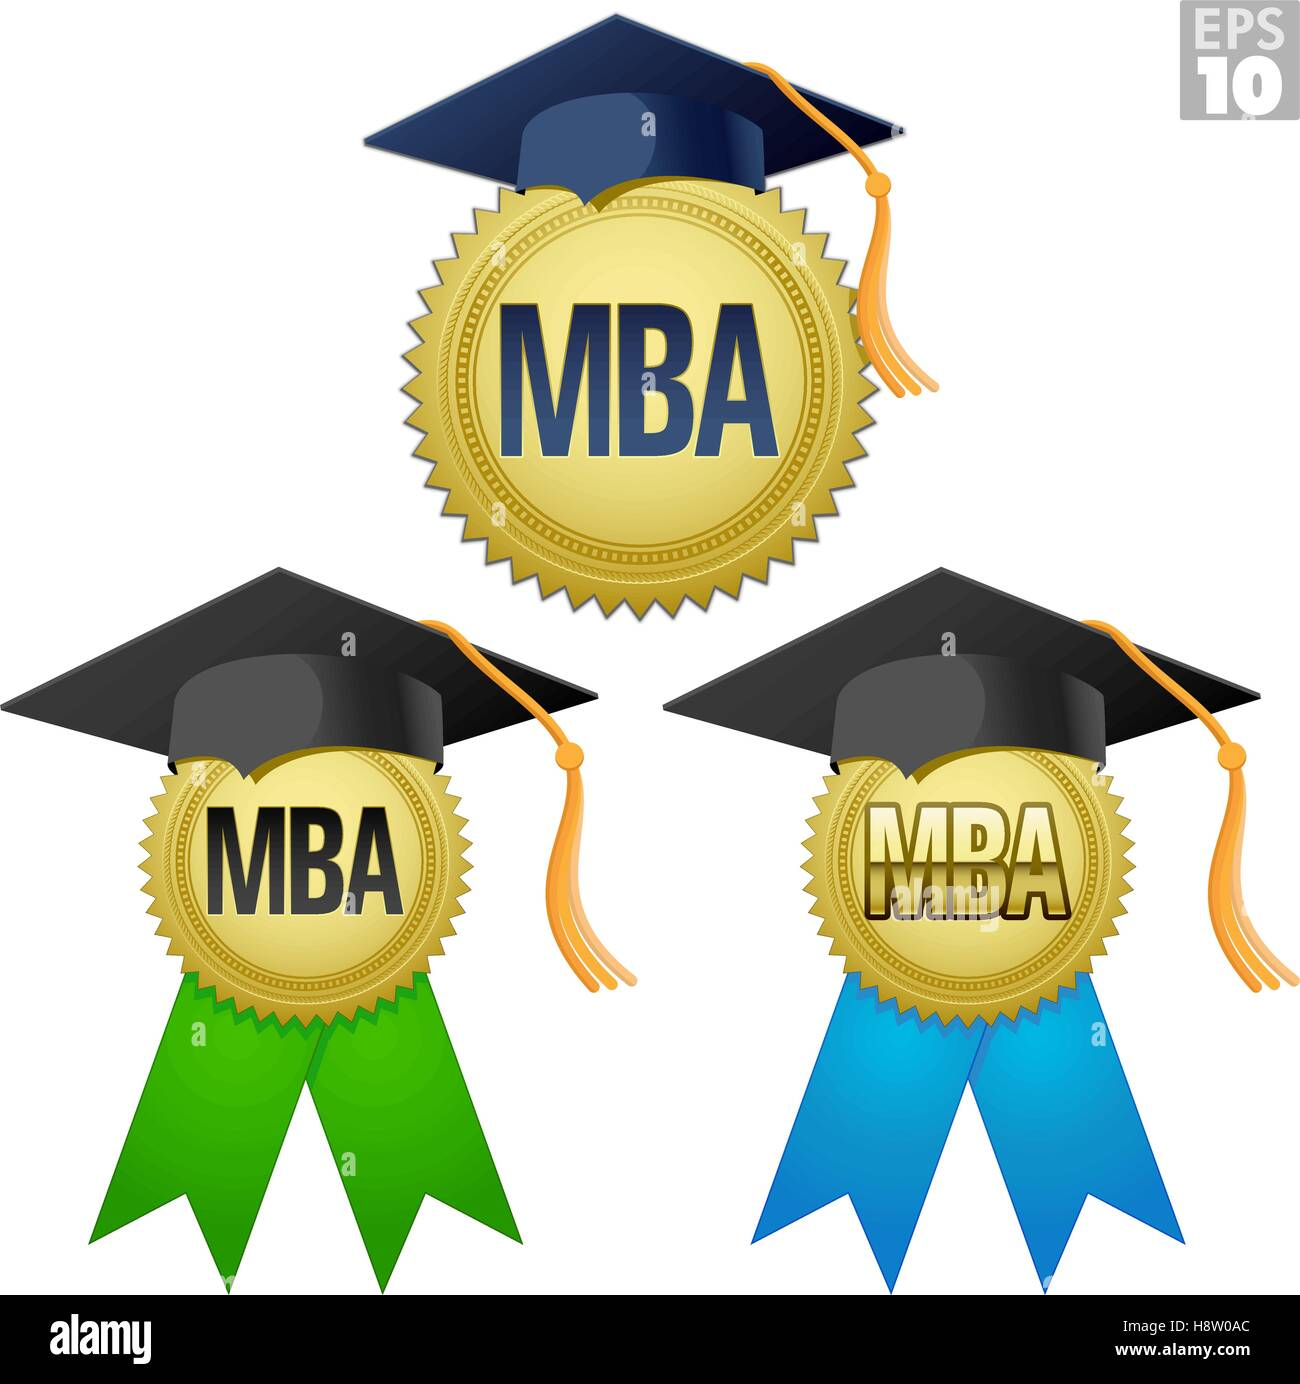 5e9f19f3a16 Mba Graduation Stock Photos   Mba Graduation Stock Images - Alamy